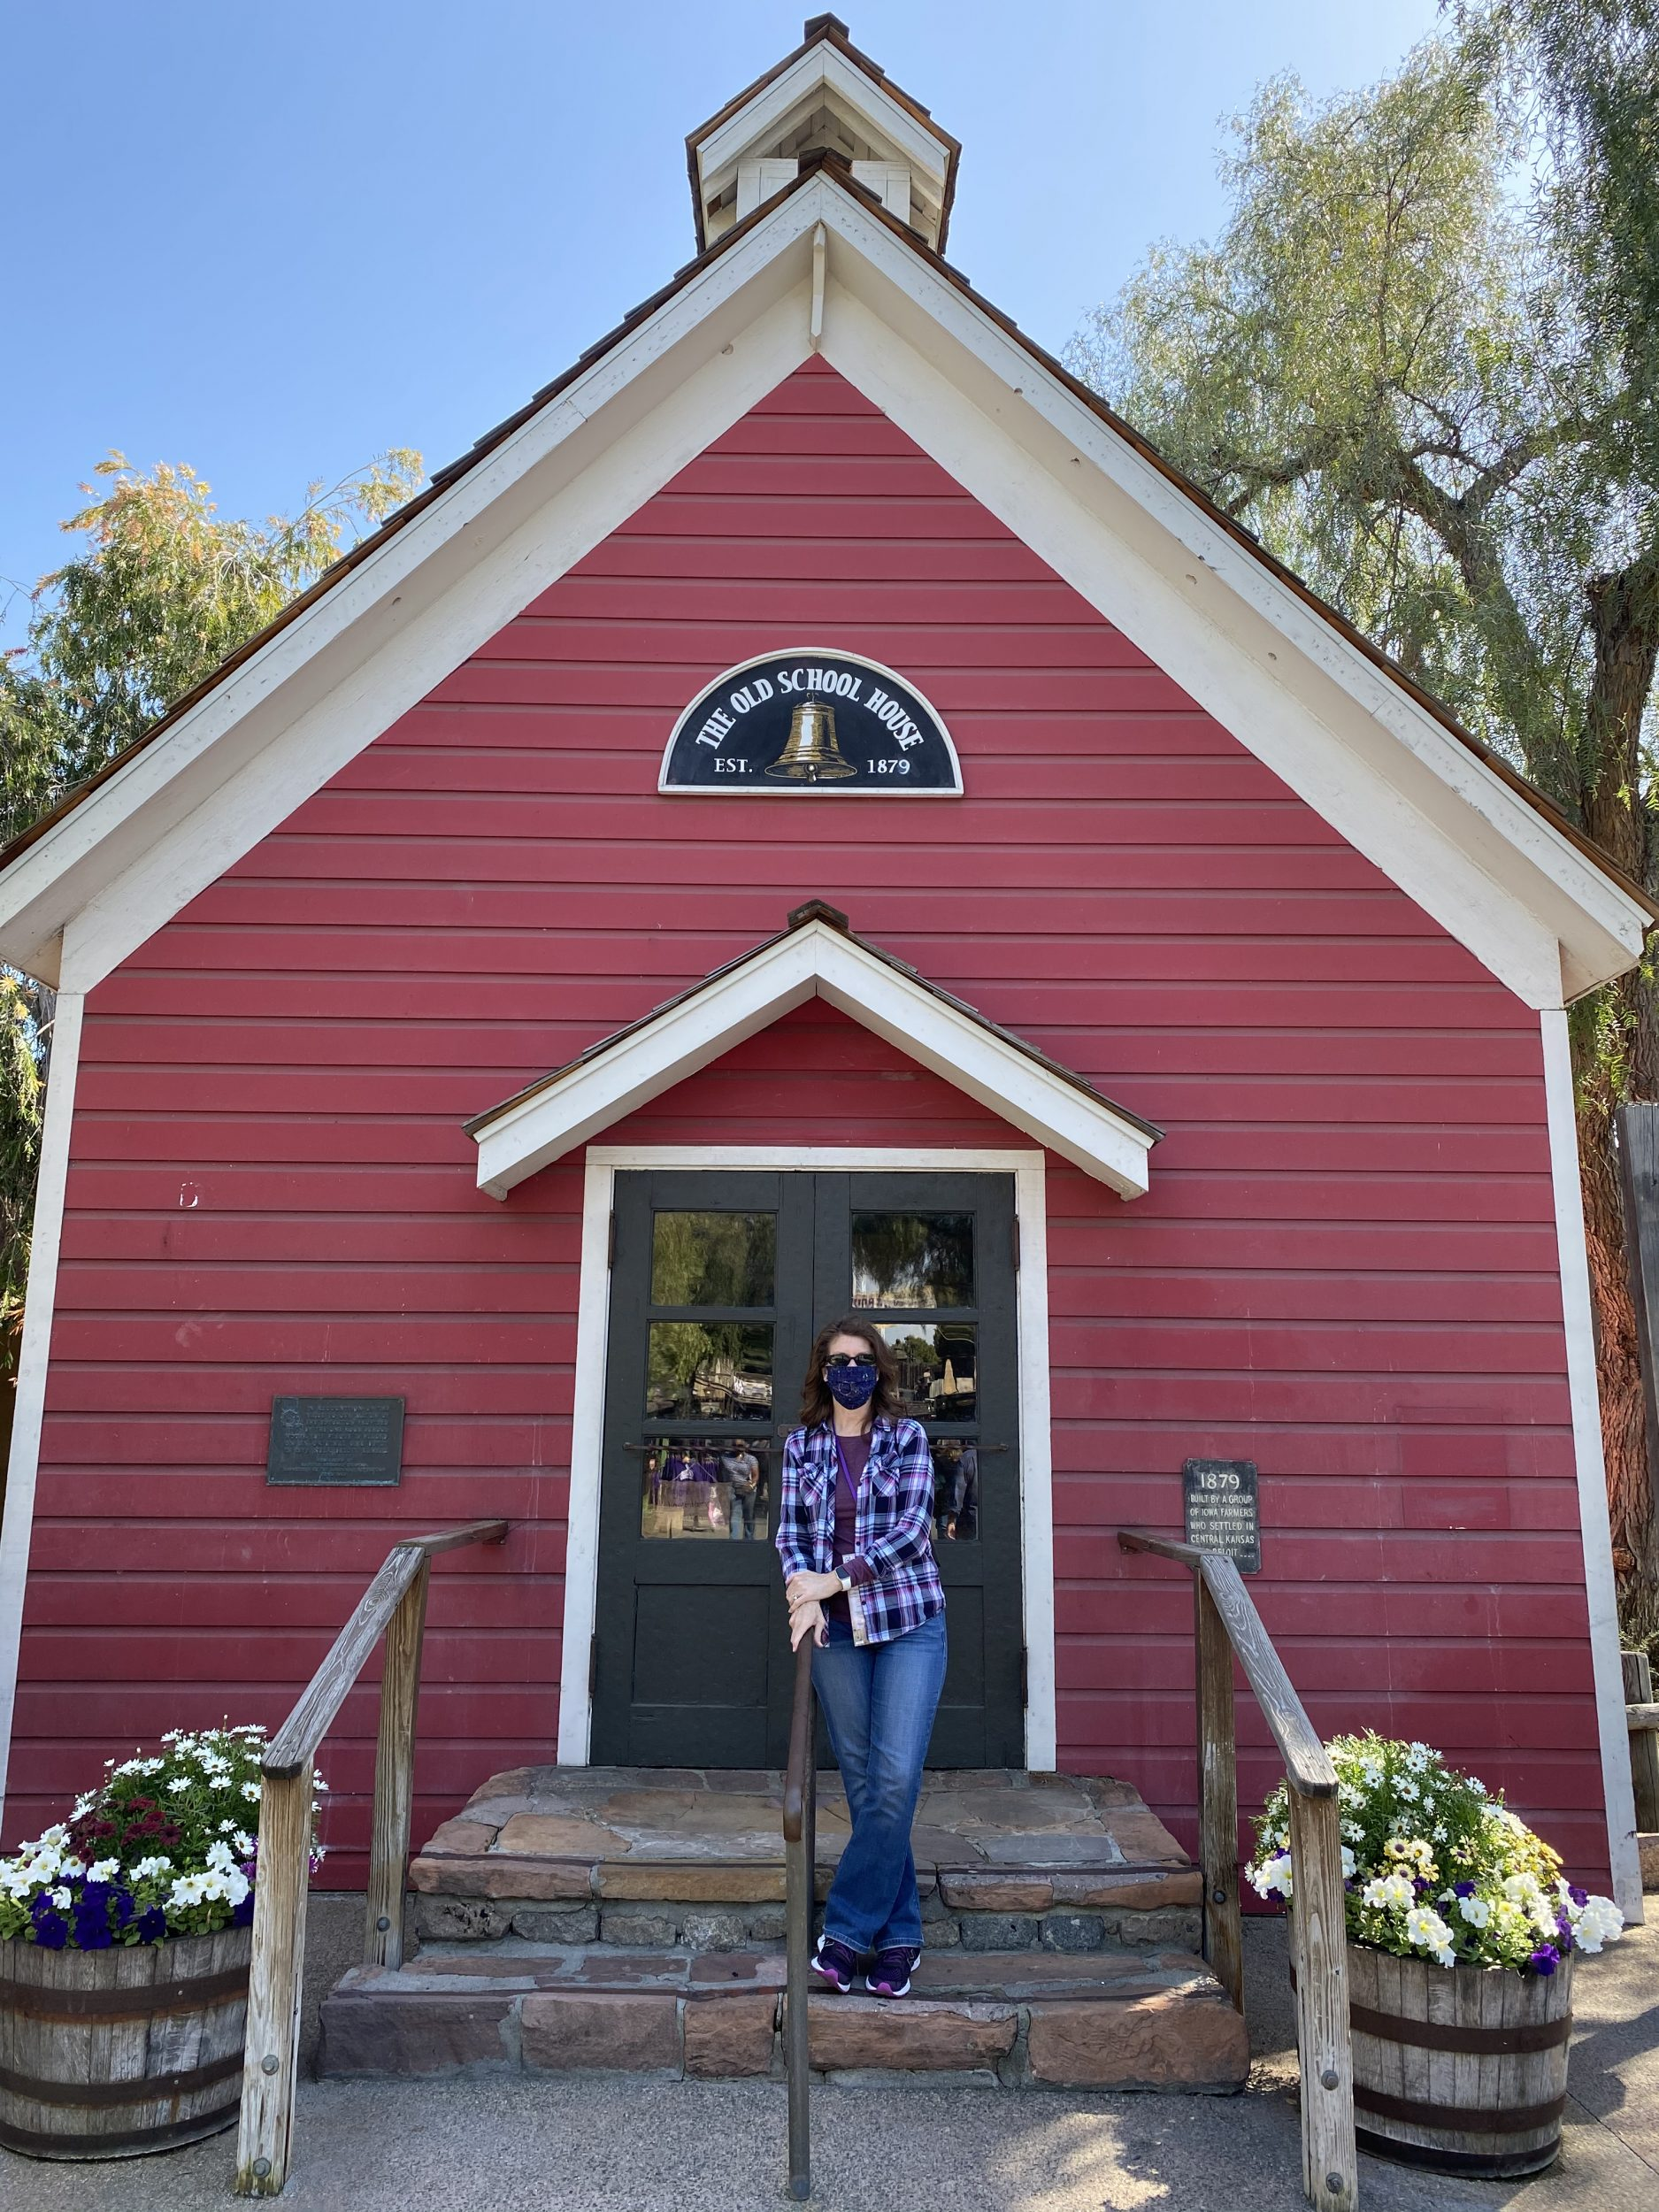 Denise M. Colby standing in front of historical red one-room schoolhouse at Knotts Berry Farm